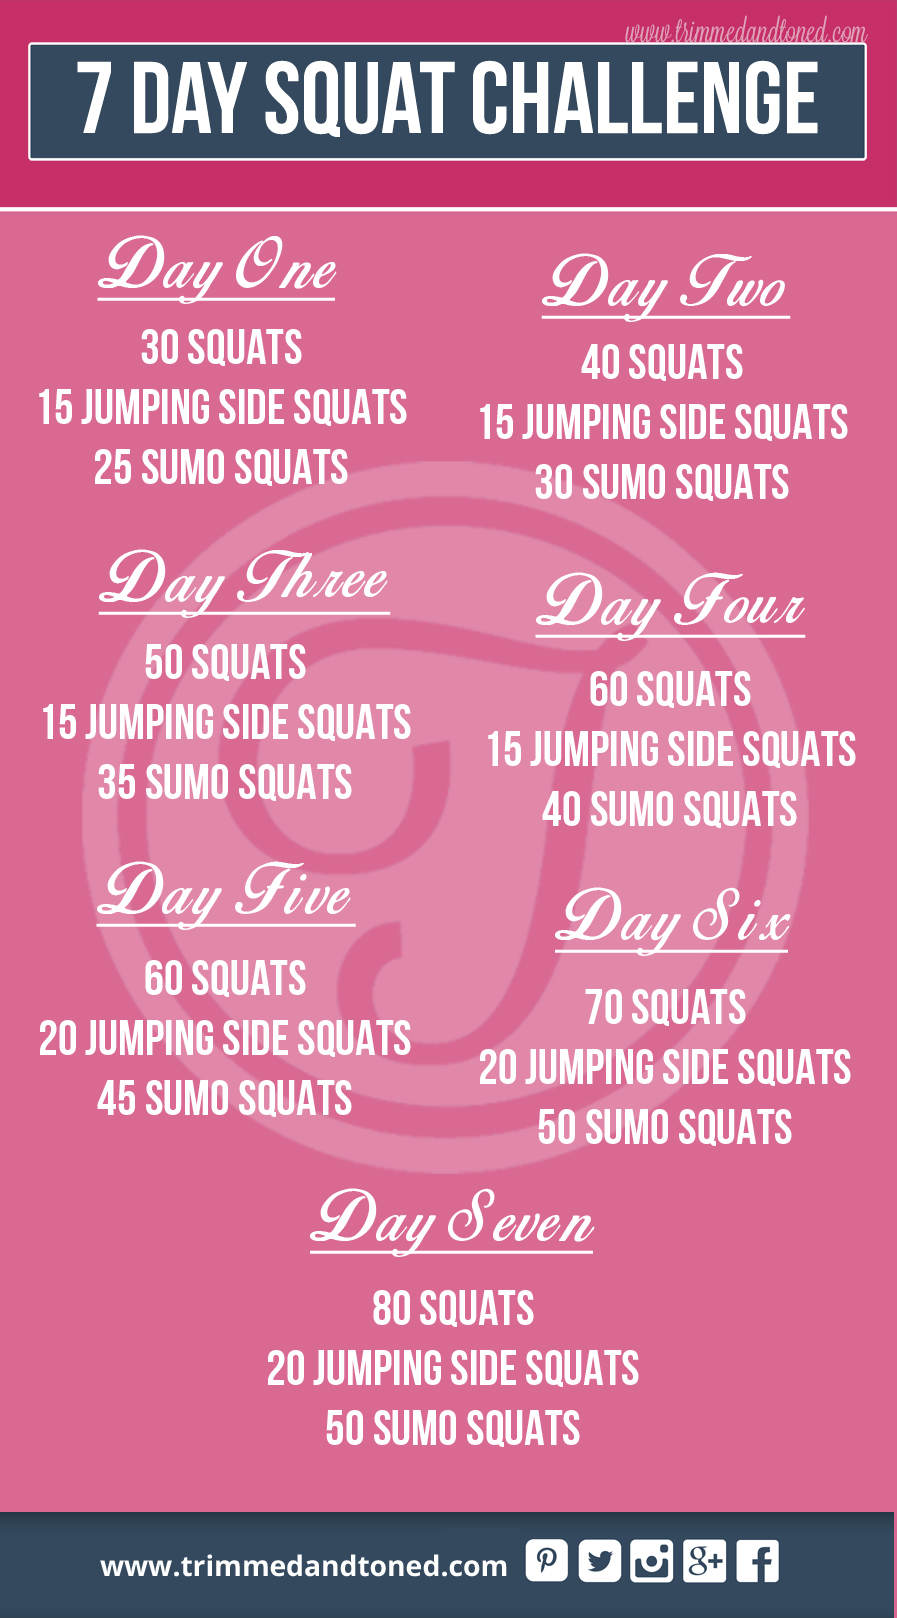 The Ultimate Beginner 7 Day Squat Challenge Weight Loss Workout